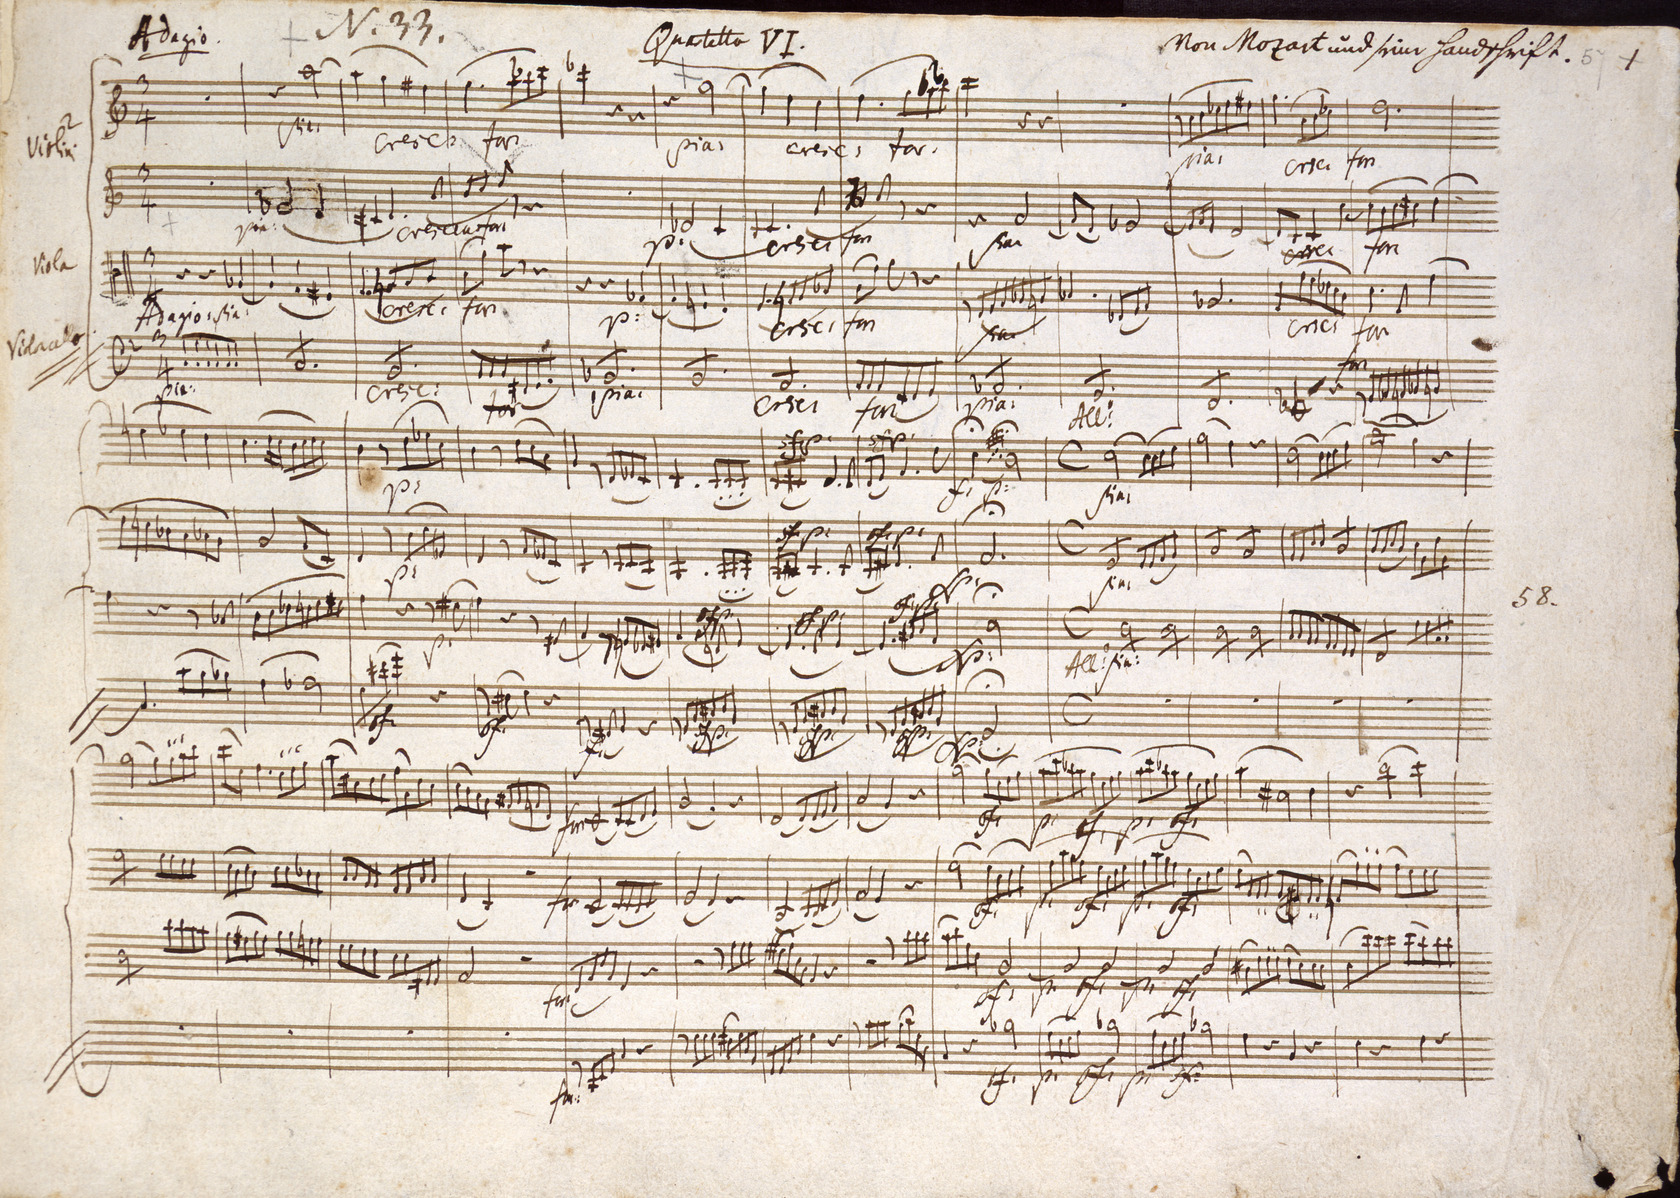 List of compositions by Wolfgang Amadeus Mozart